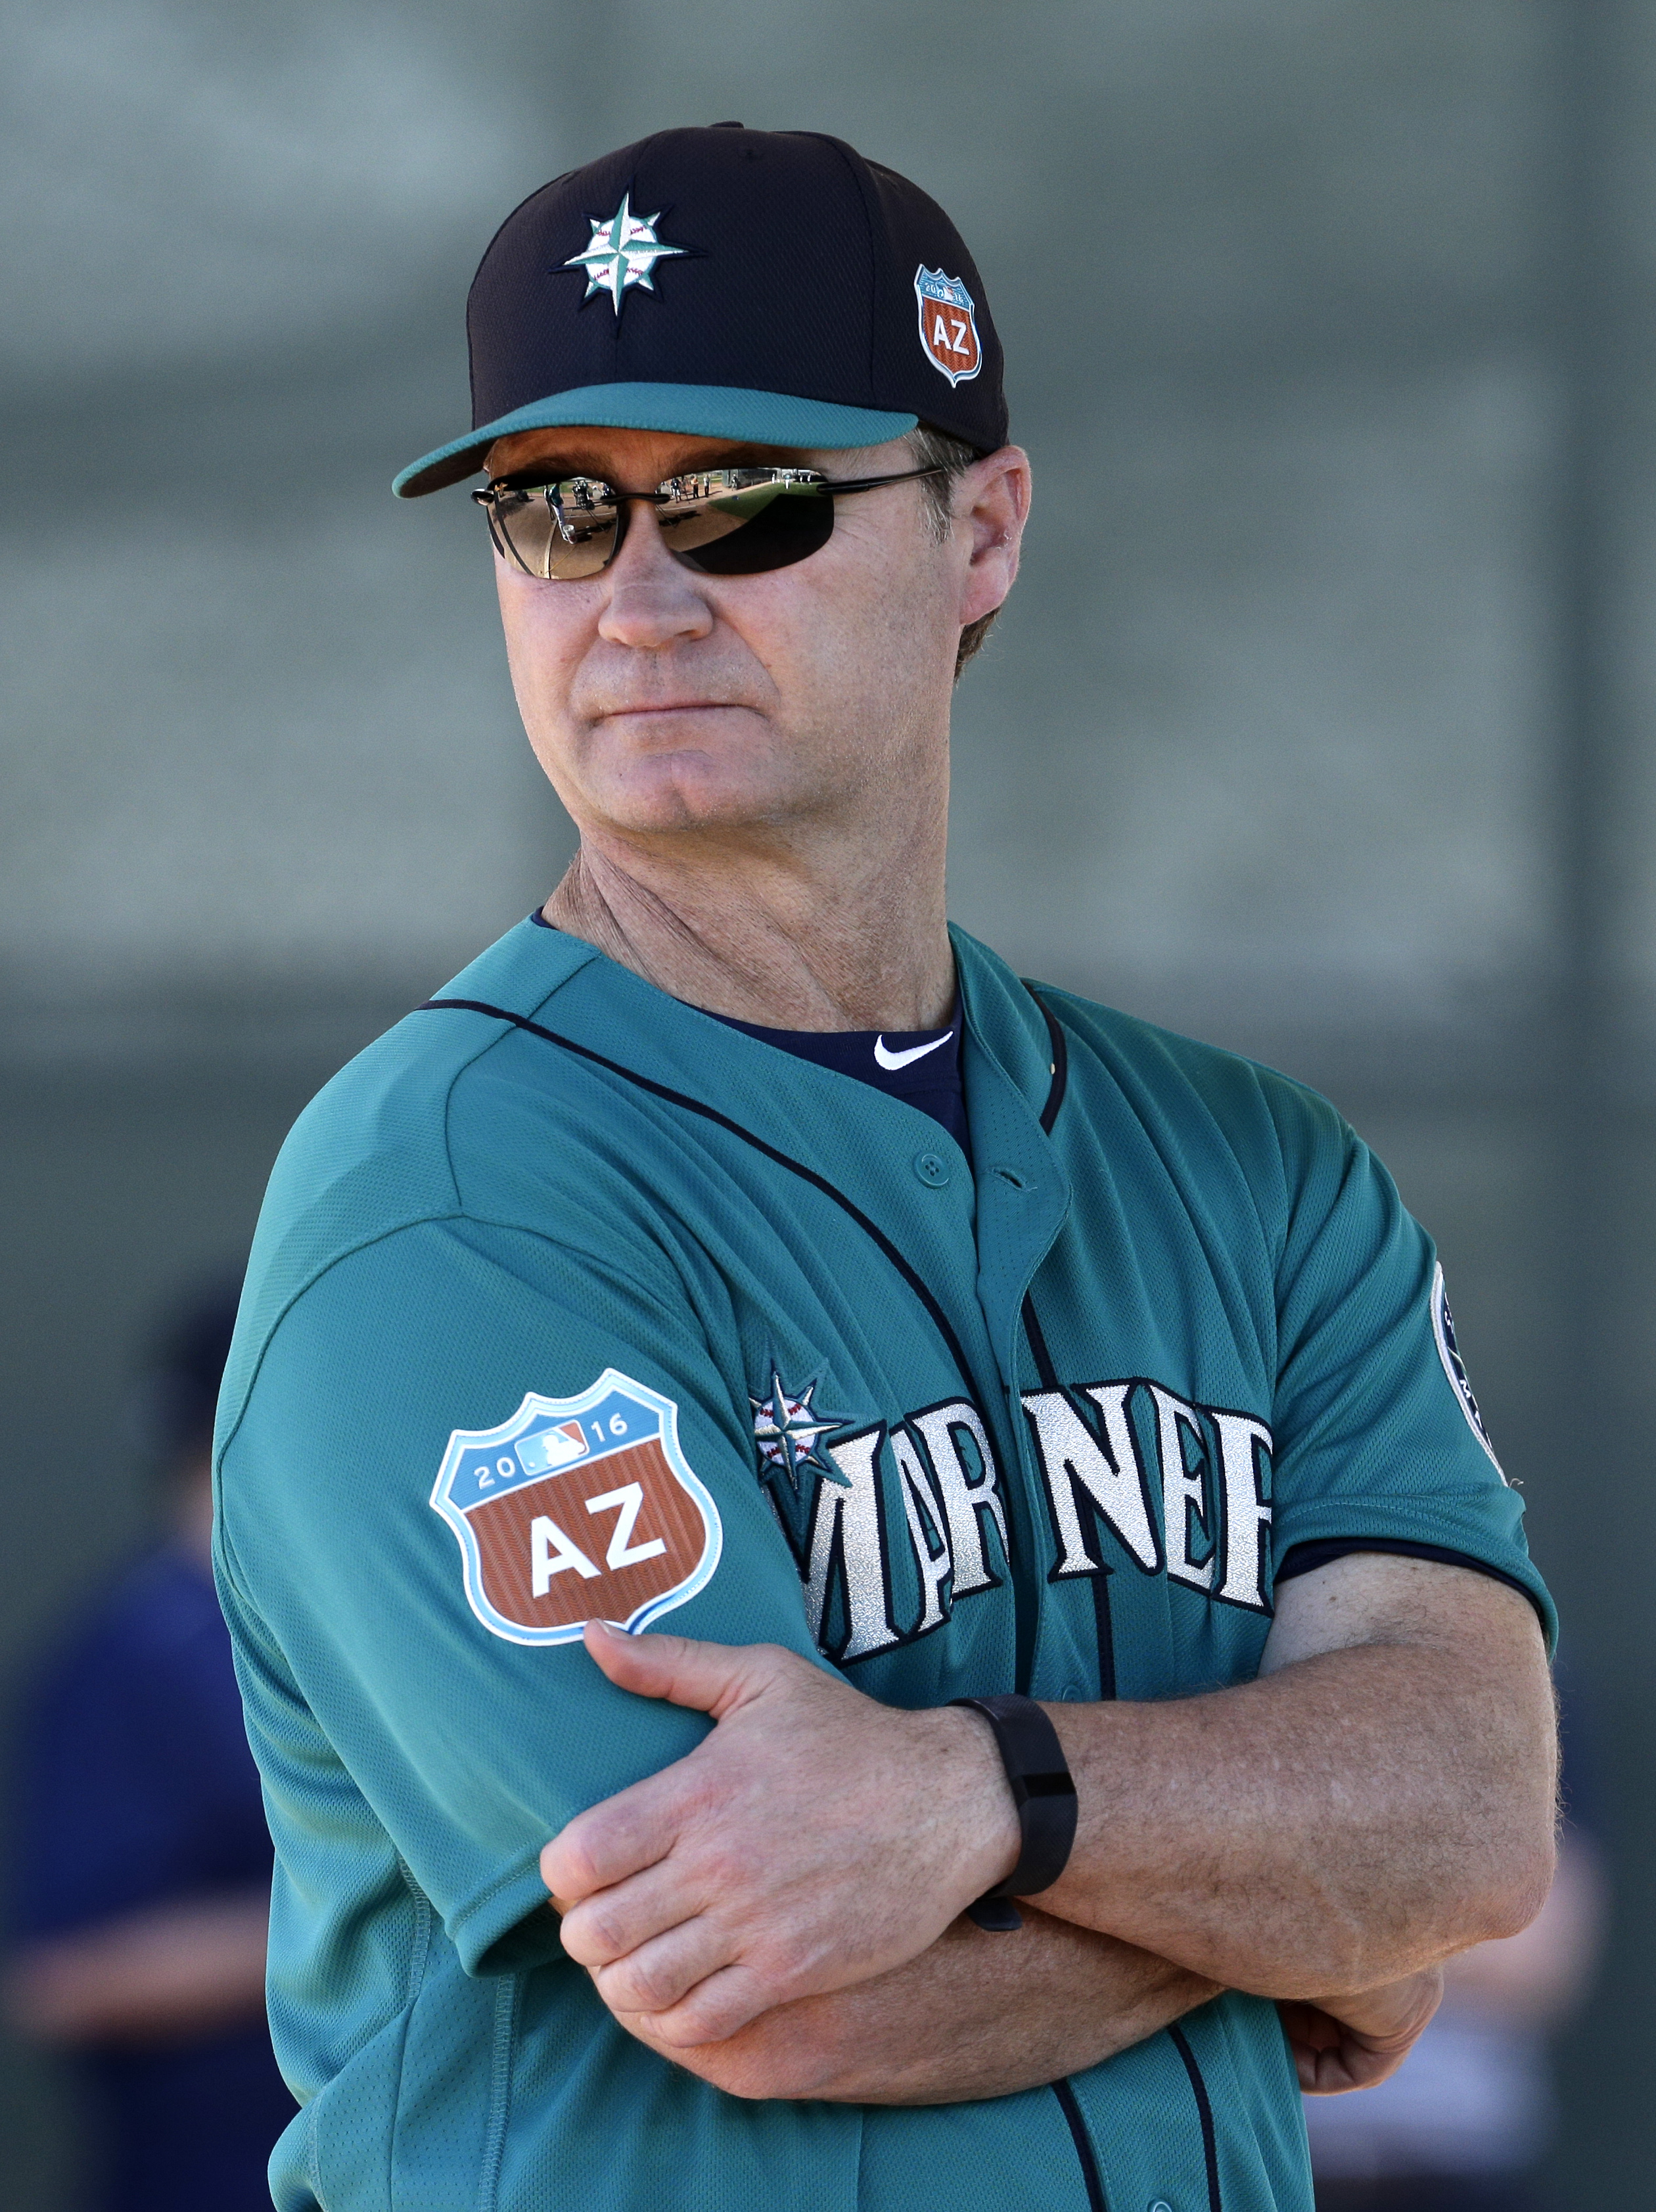 FILE - In this Feb. 20, 2016, file photo, Seattle Mariners manager Scott Servais watches a drill during spring training baseball practice, in Peoria, Ariz. From the chair of new general manager Jerry Dipoto, to first-time manager Scott Servais and down to